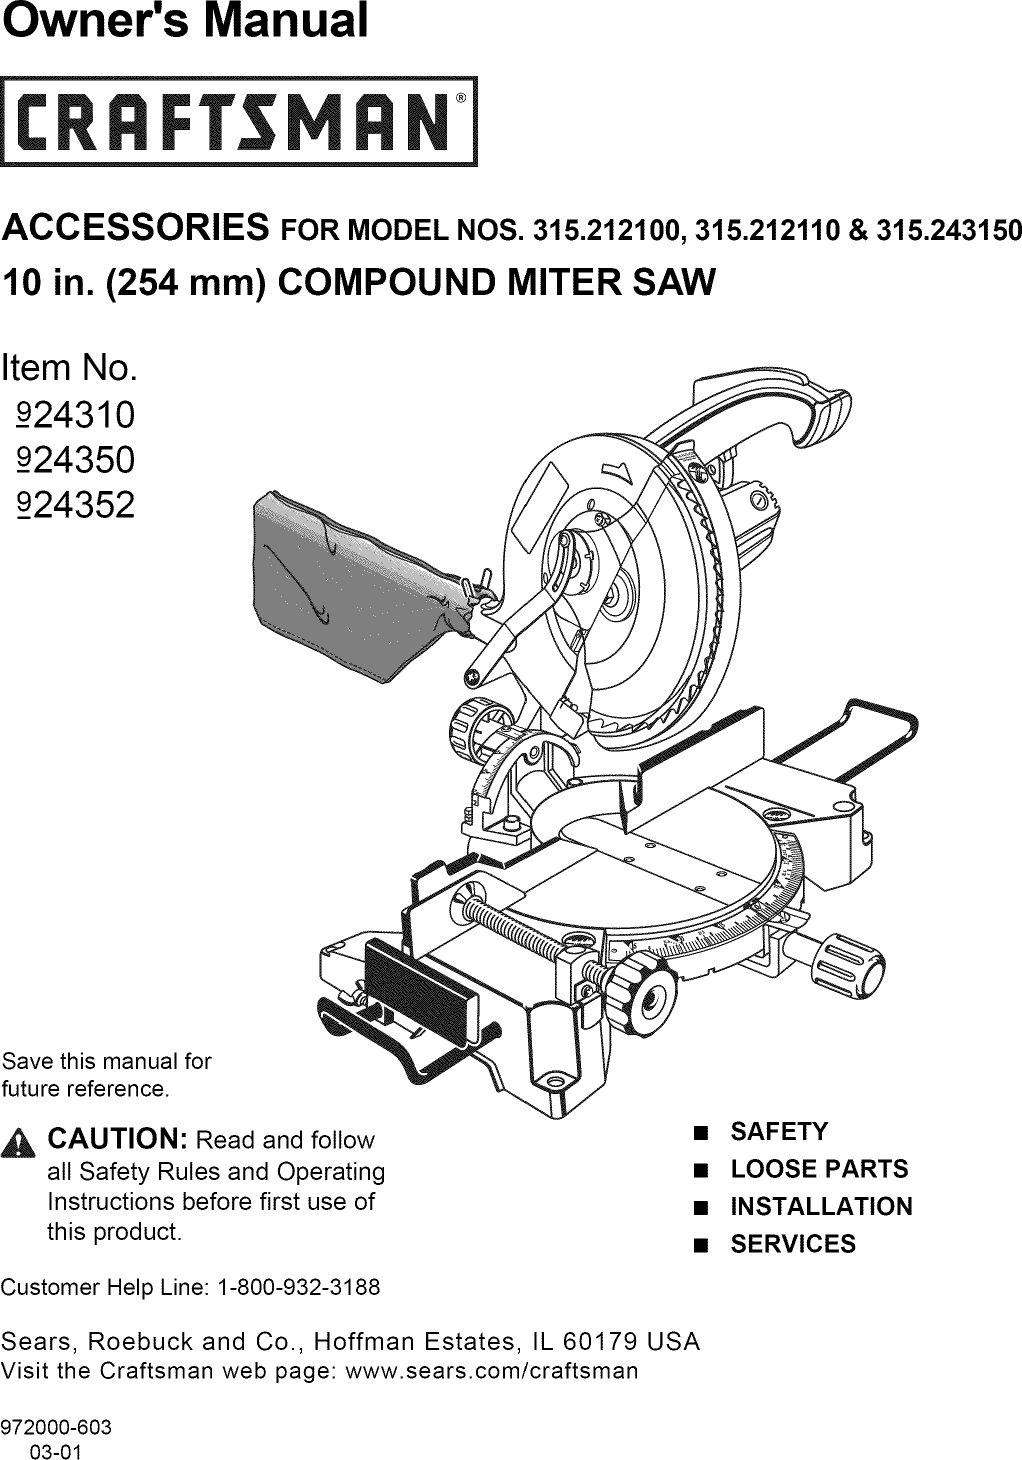 hight resolution of craftsman 315212110 user manual 10 compound miter saw manuals and guides l1001368